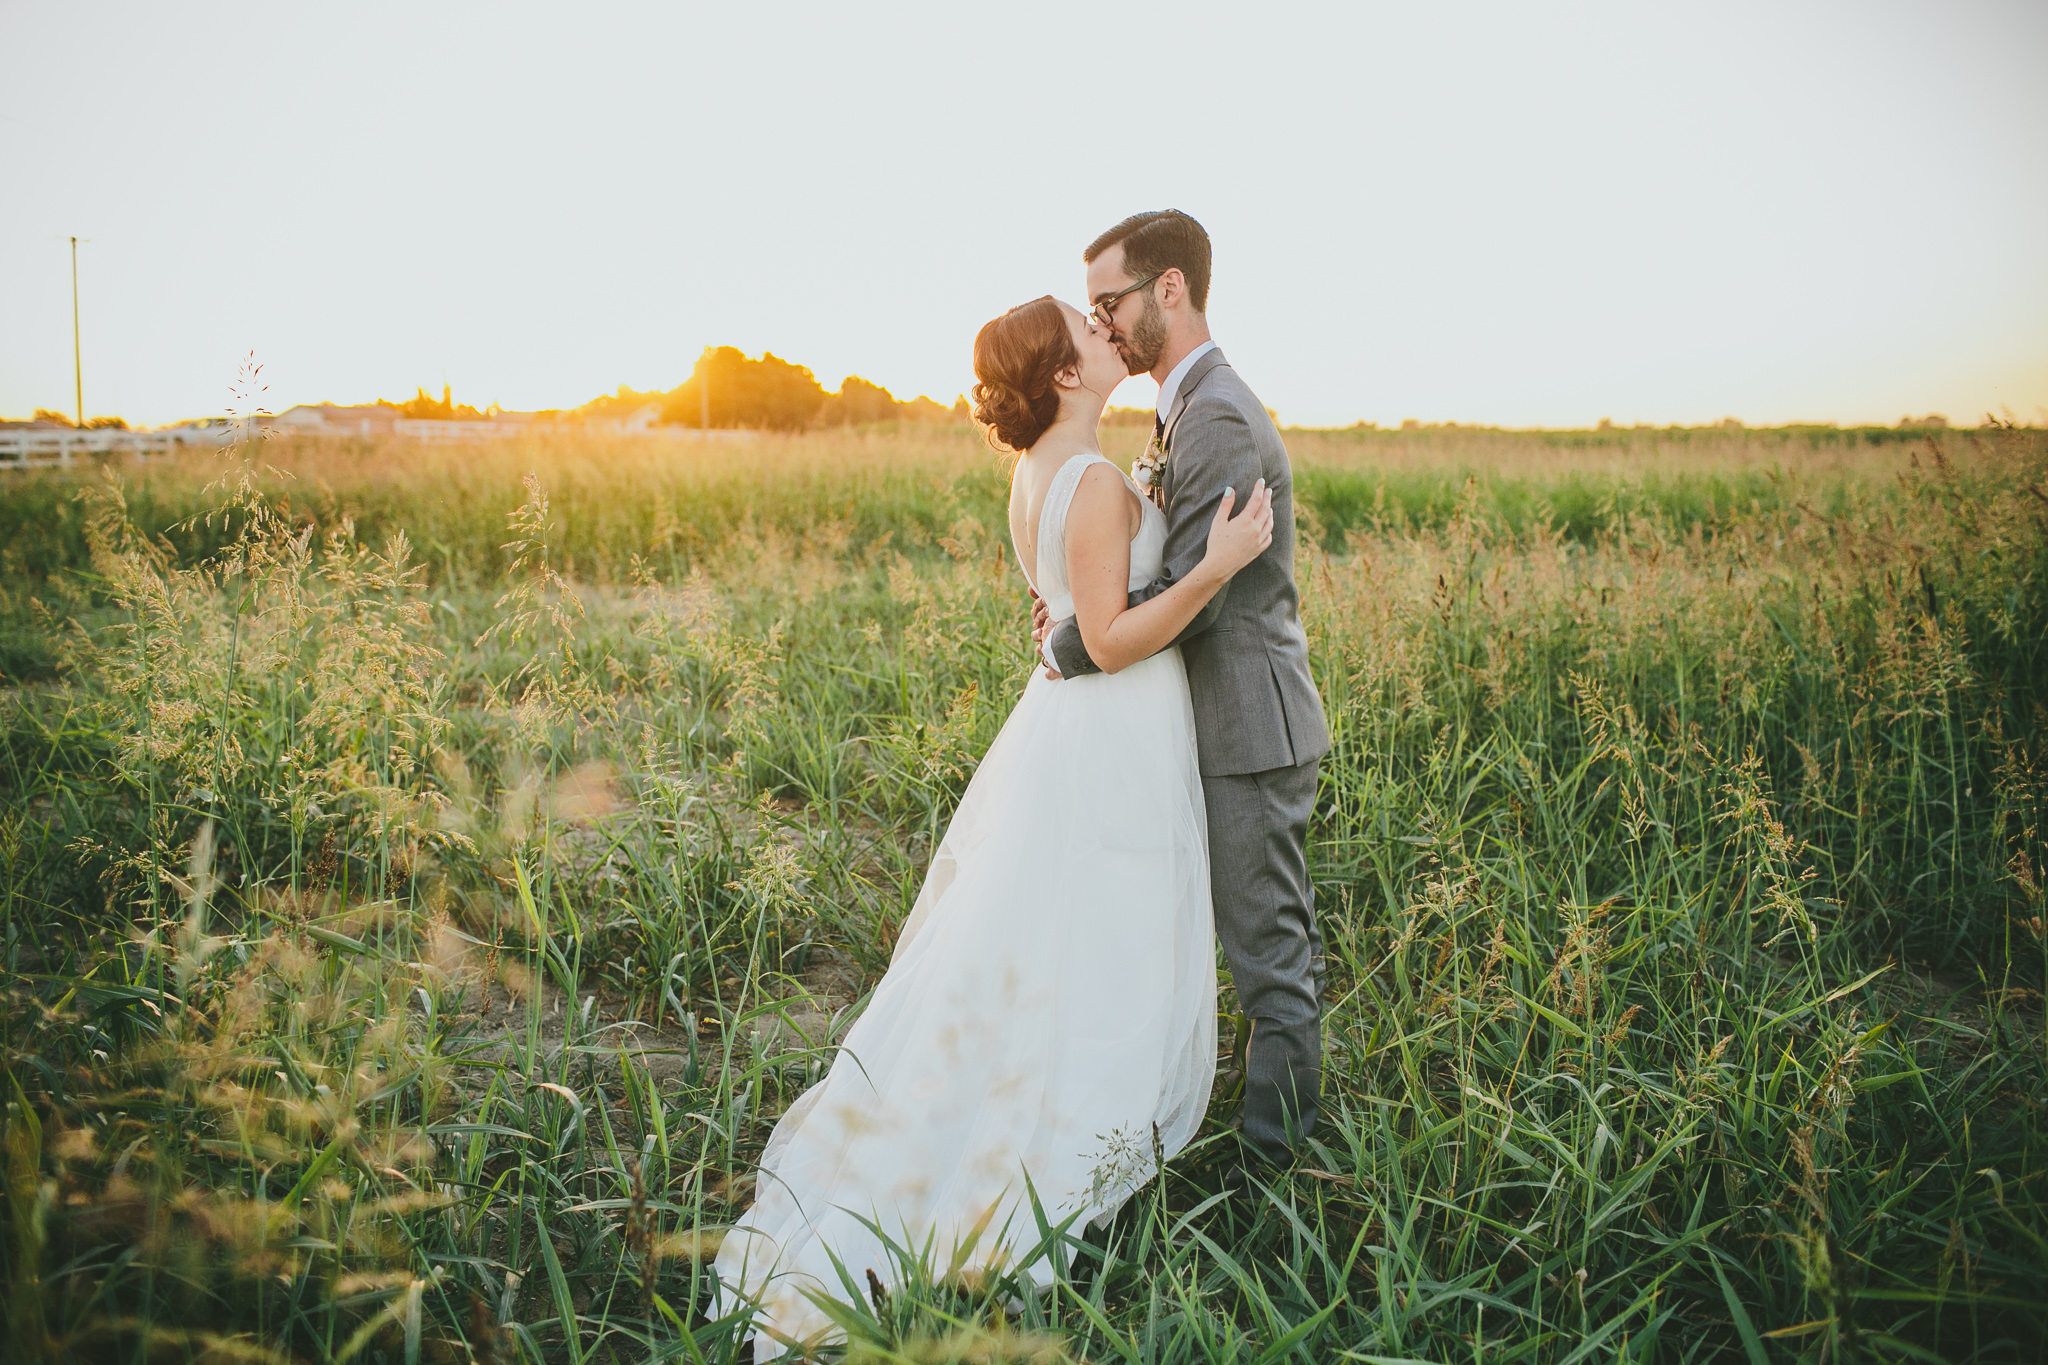 Amy+Nick-WEDDING_KellyBoitanoPhotography20151219_0141